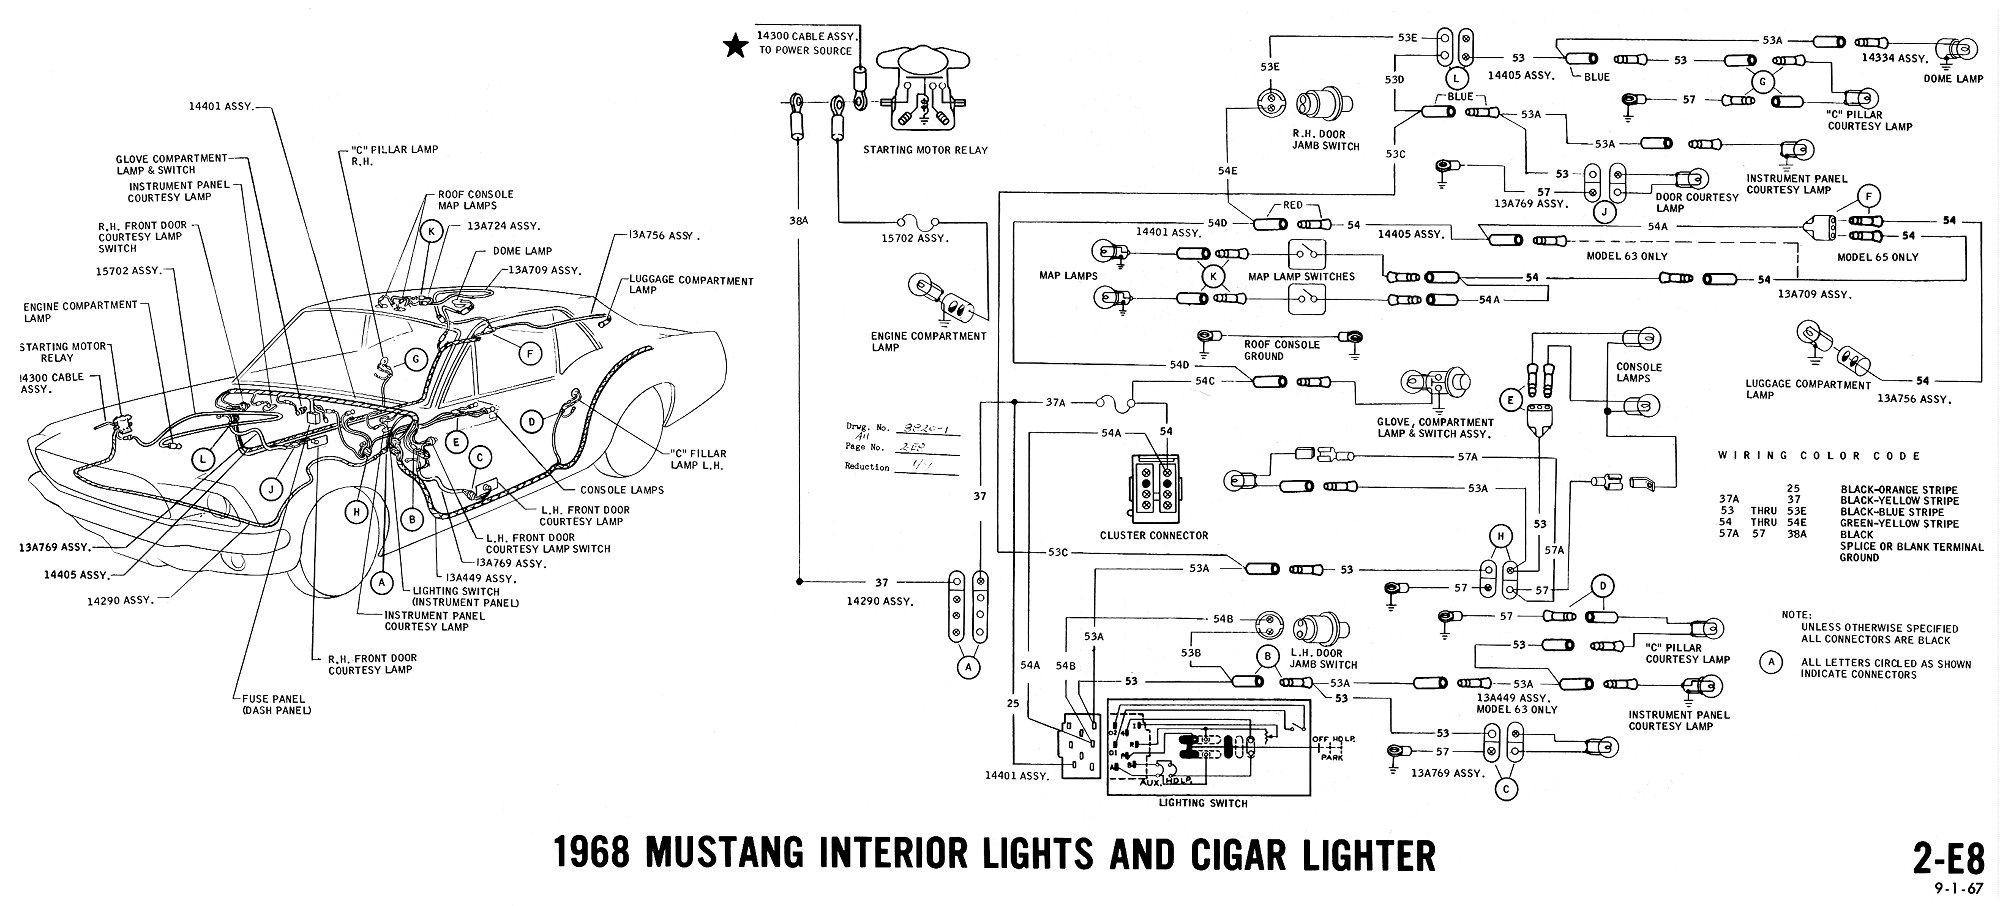 68 Mustang Ignition Switch Diagram Reinvent Your Wiring Switching Circuit 1968 Diagrams Evolving Software Rh Peterfranza Com